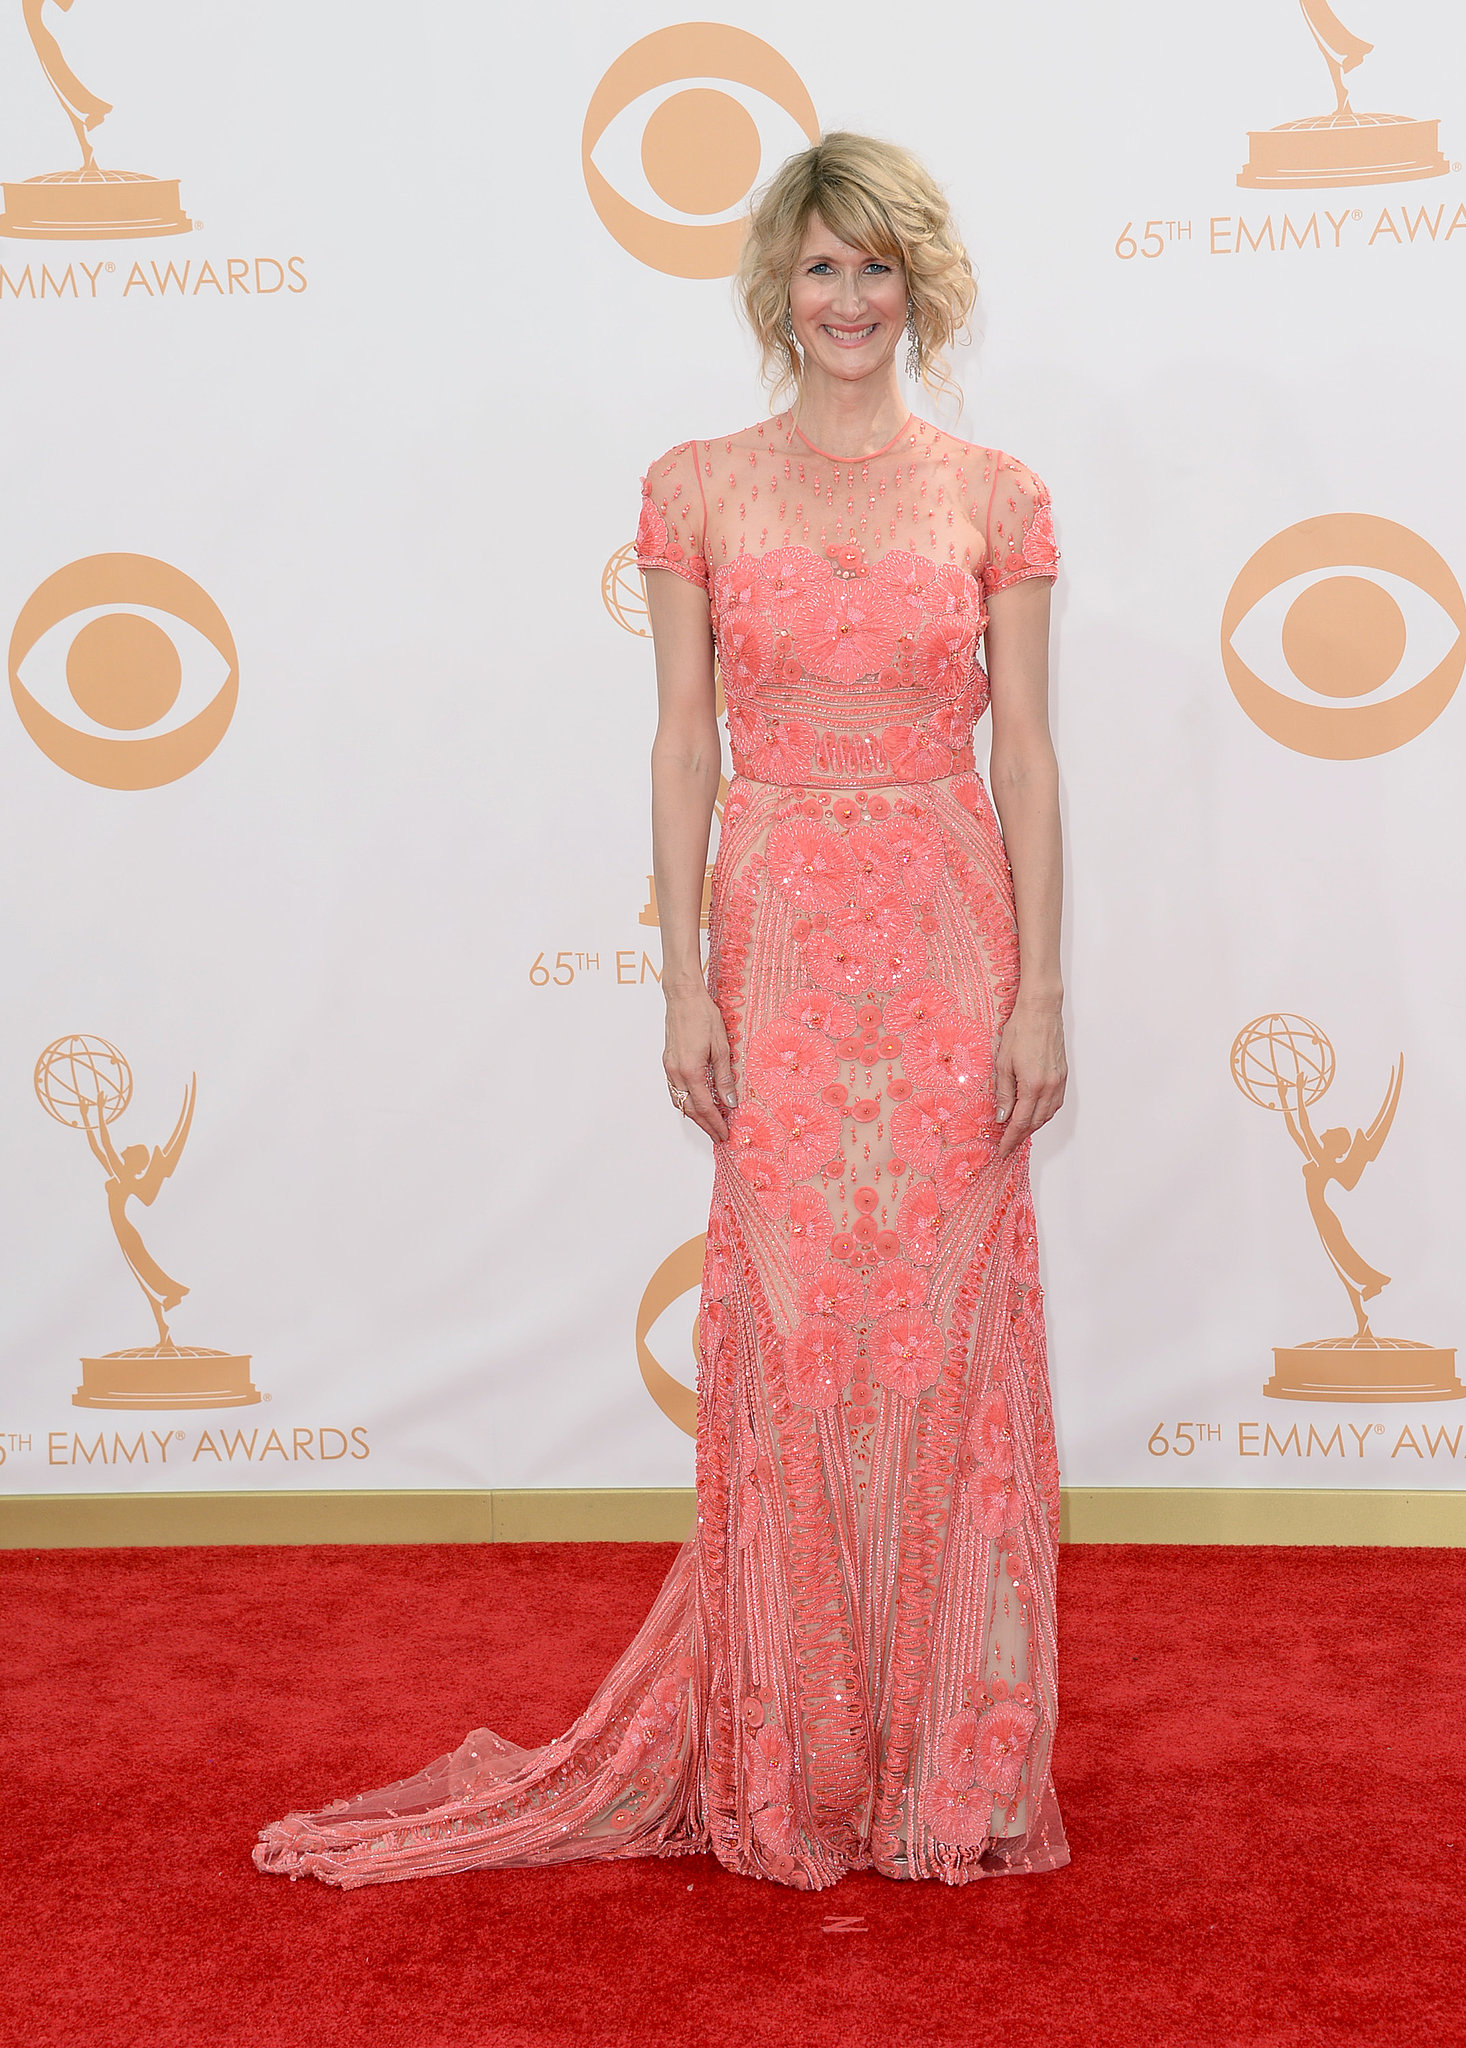 Laura Dern attended the Emmys.